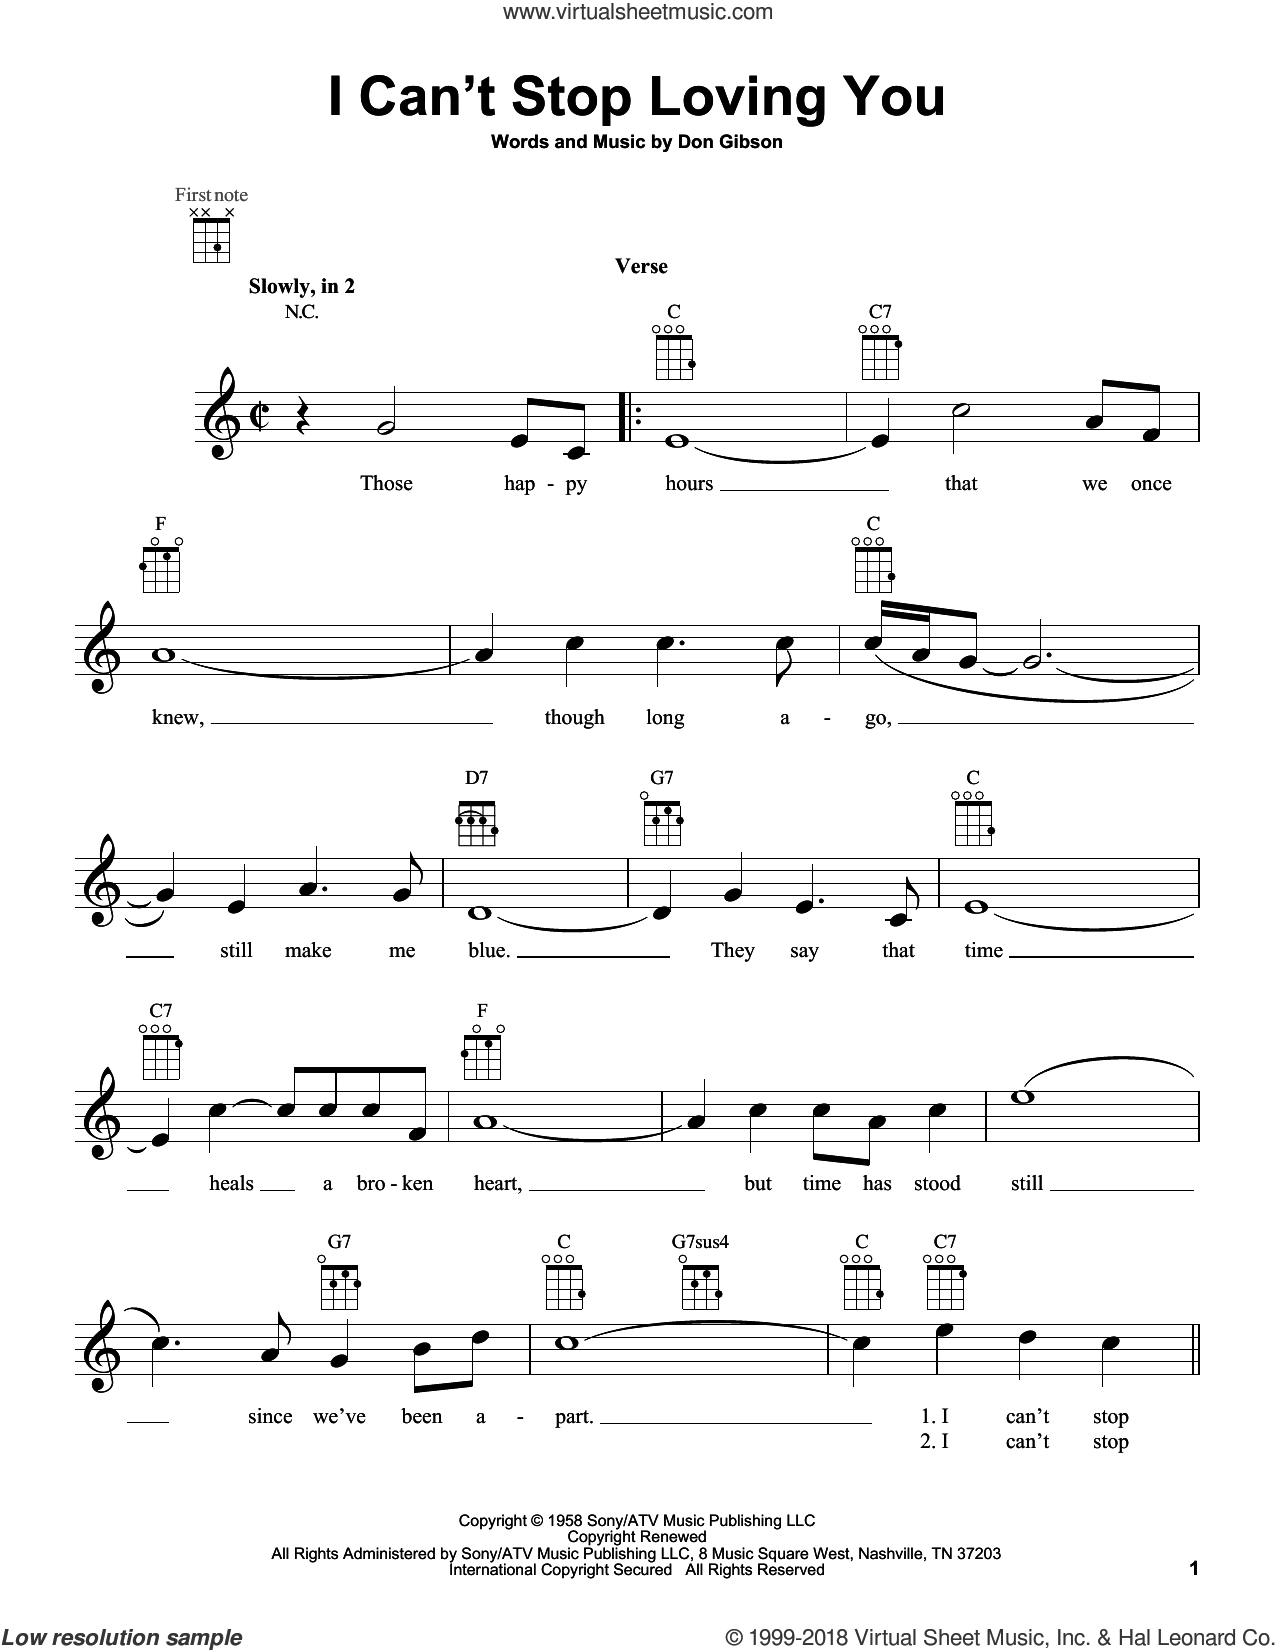 I Can't Stop Loving You sheet music for ukulele by Don Gibson, Conway Twitty, Elvis Presley, Kitty Wells and Ray Charles, intermediate skill level